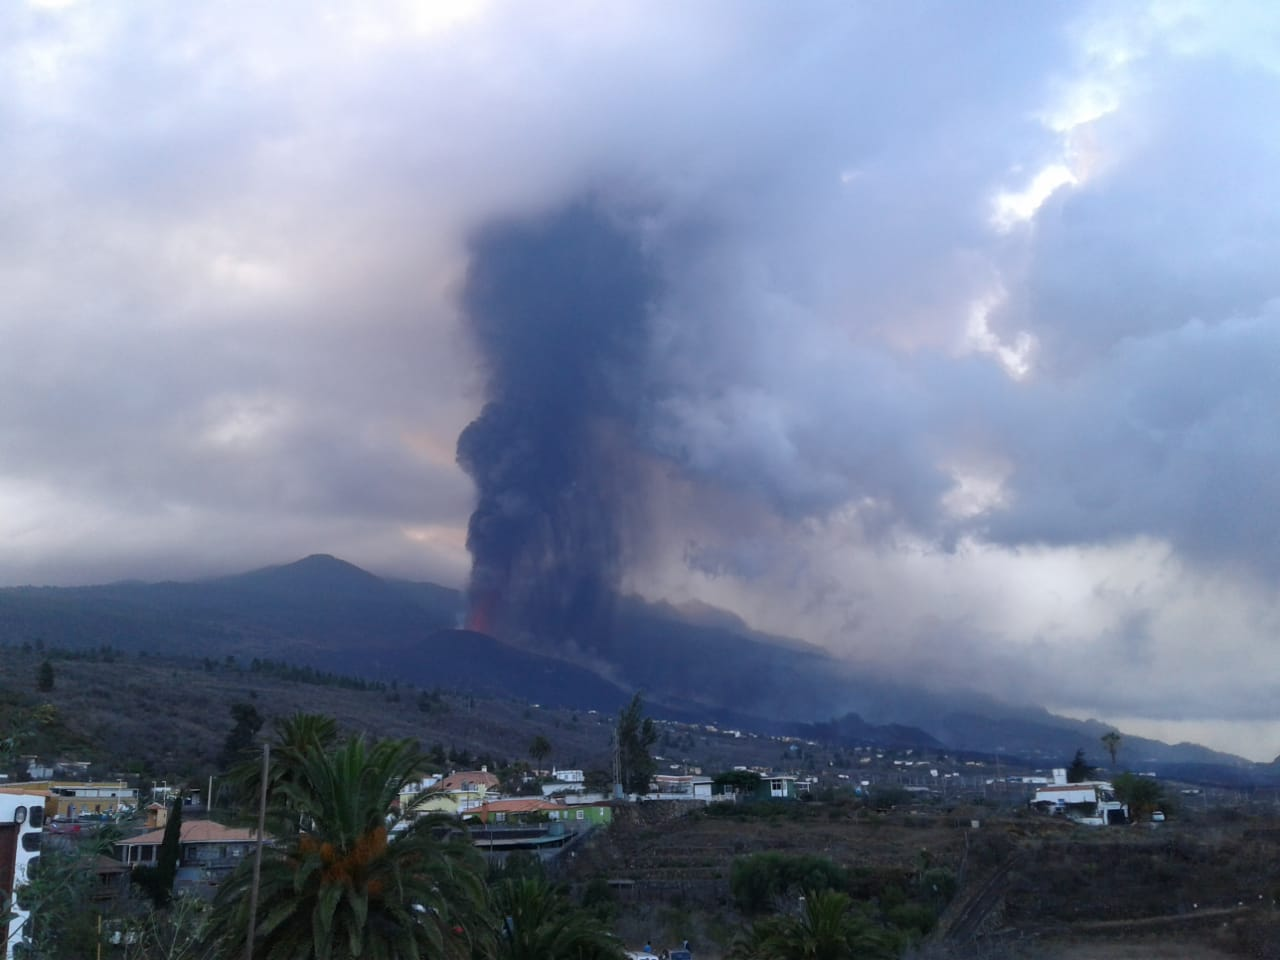 Lava fountain and ash column from Cumbre Vieja volcano this morning